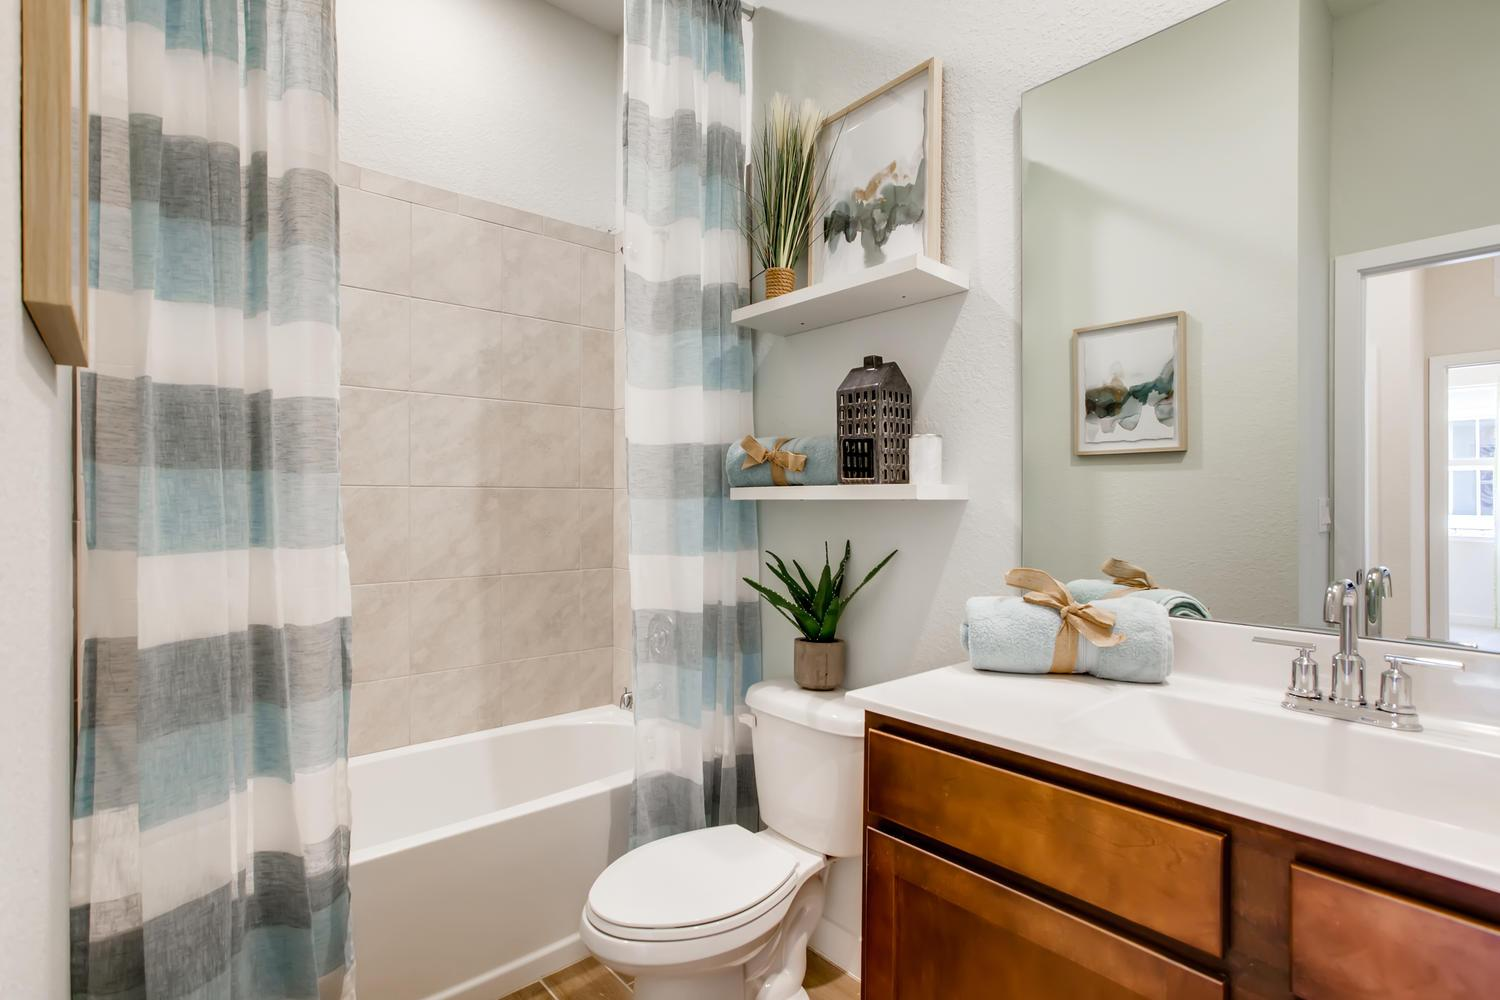 Bathroom featured in the Sydney By D.R. Horton in Palm Beach County, FL